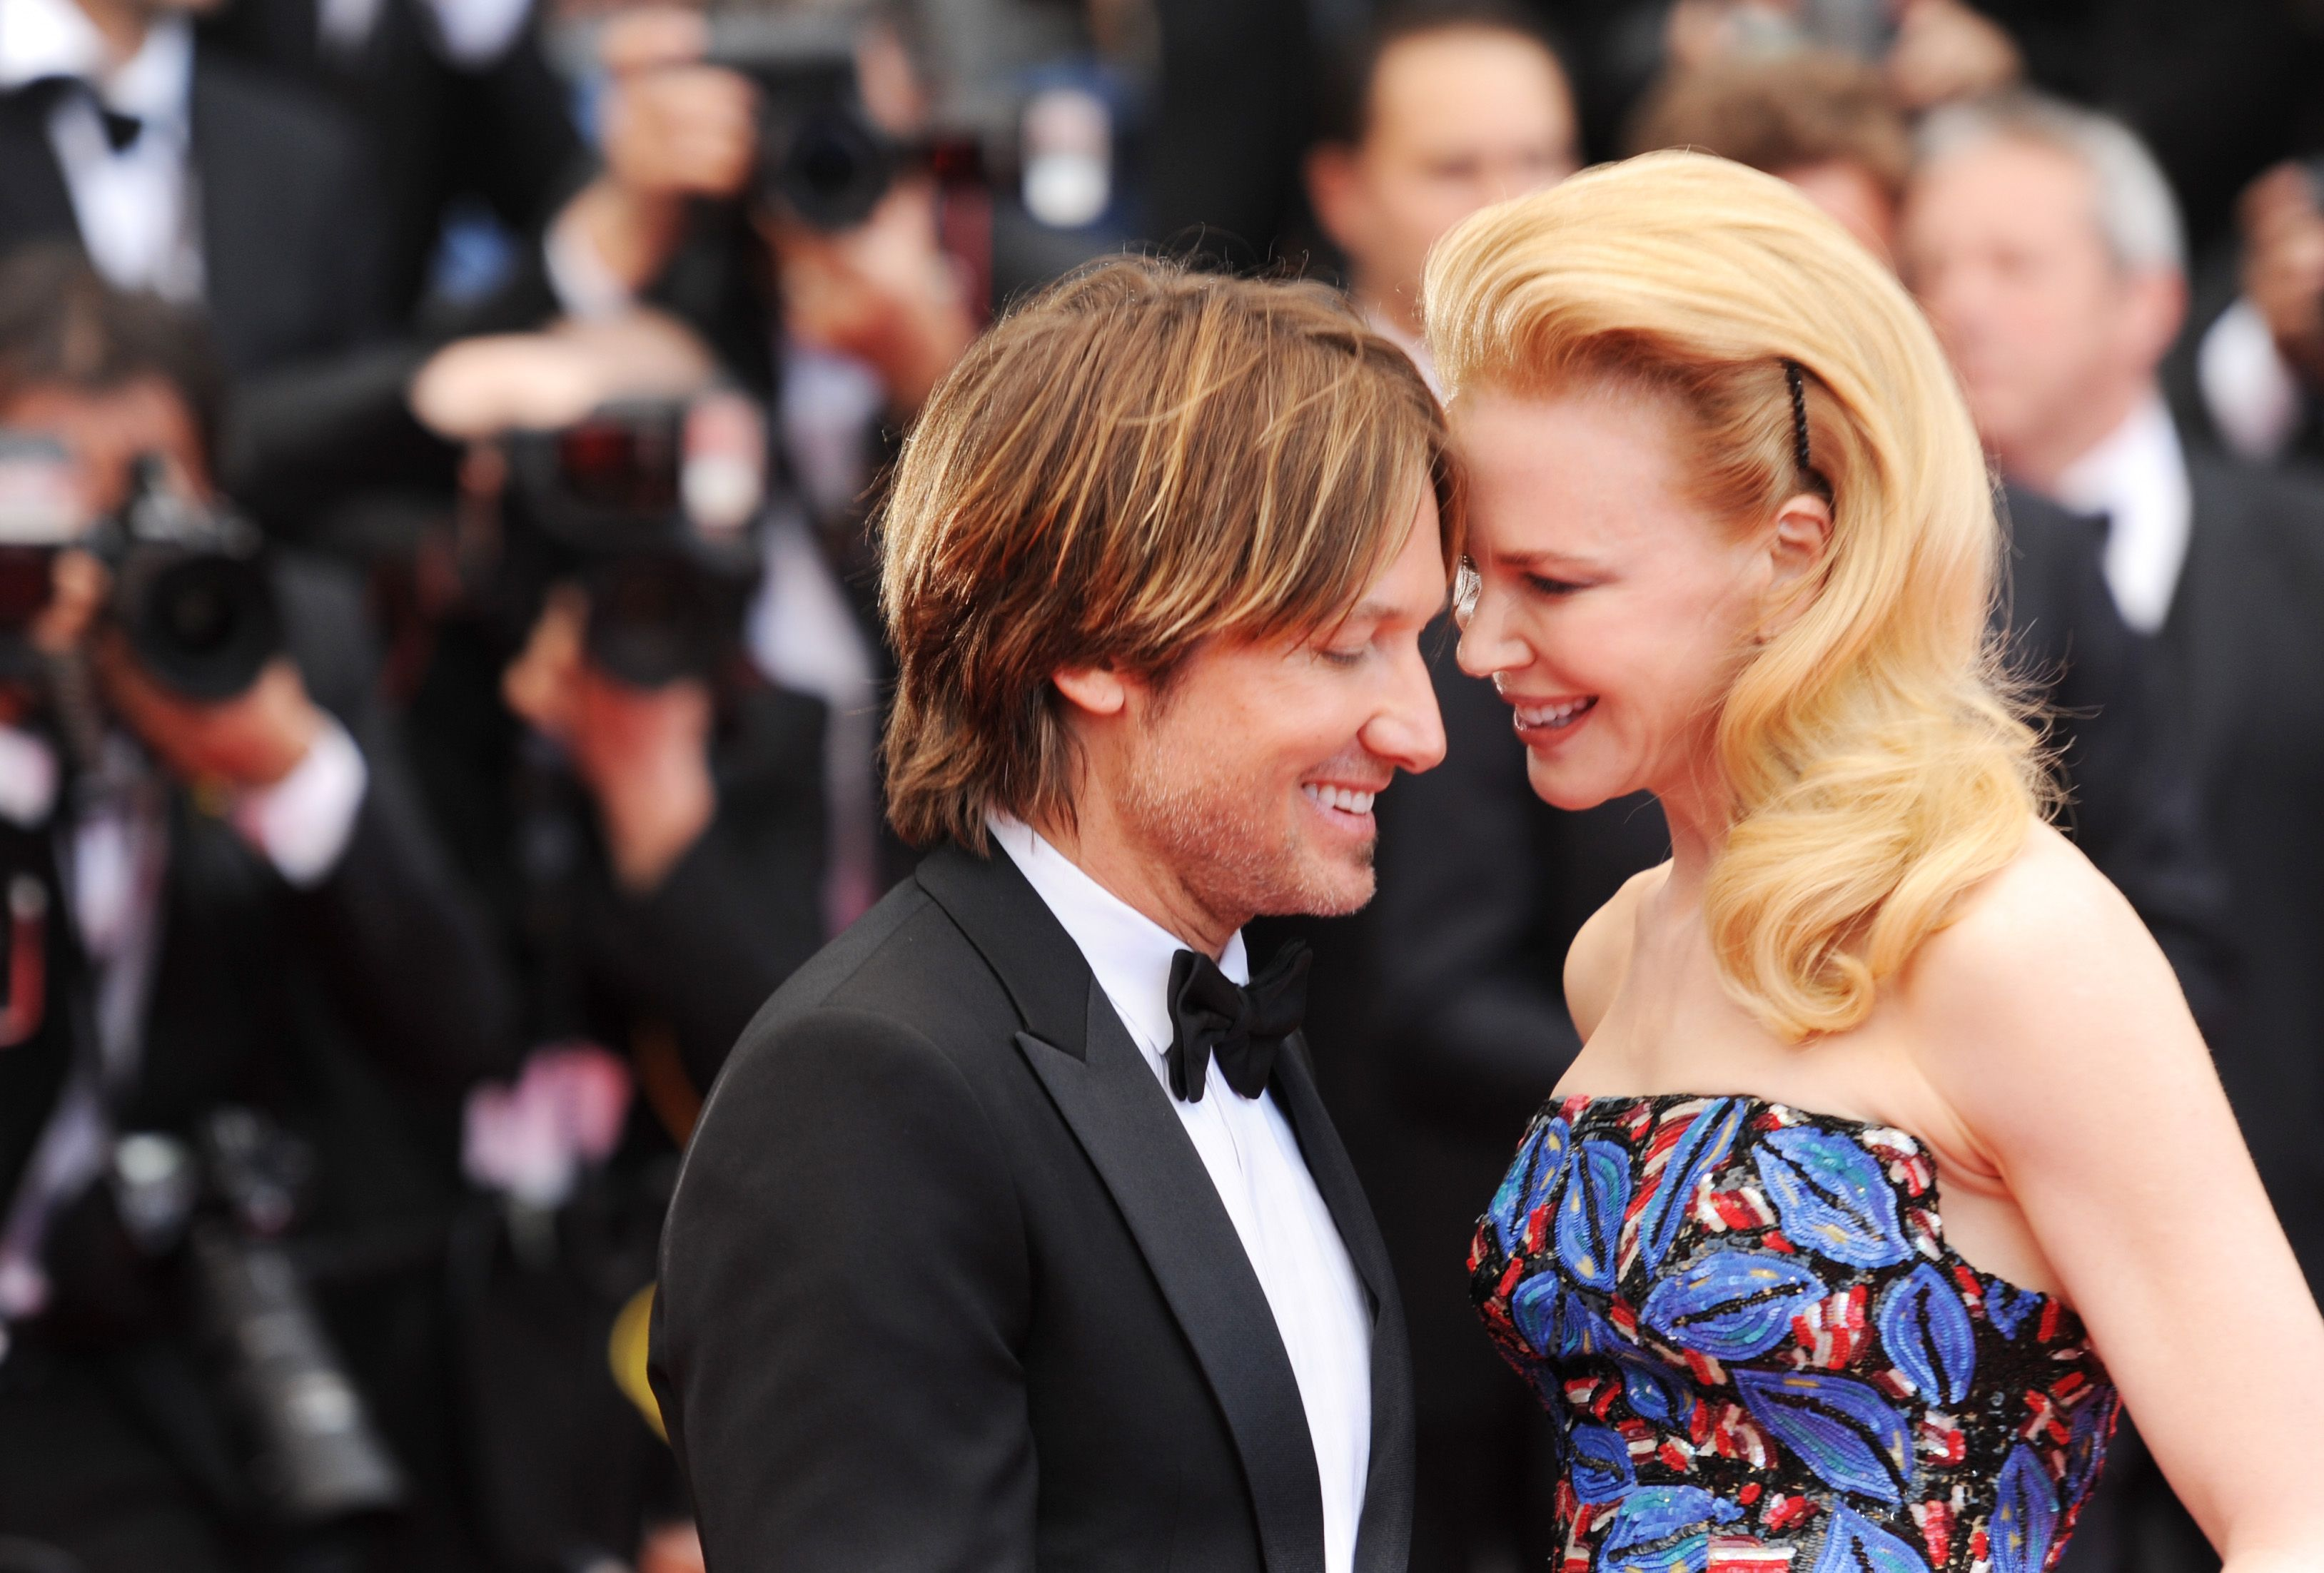 """Keith Urban and Nicole Kidman during the """"Inside Llewyn Davis"""" Premiere during the 66th Annual Cannes Film Festival at Grand Theatre Lumiere on May 19, 2013 in Cannes, France. 